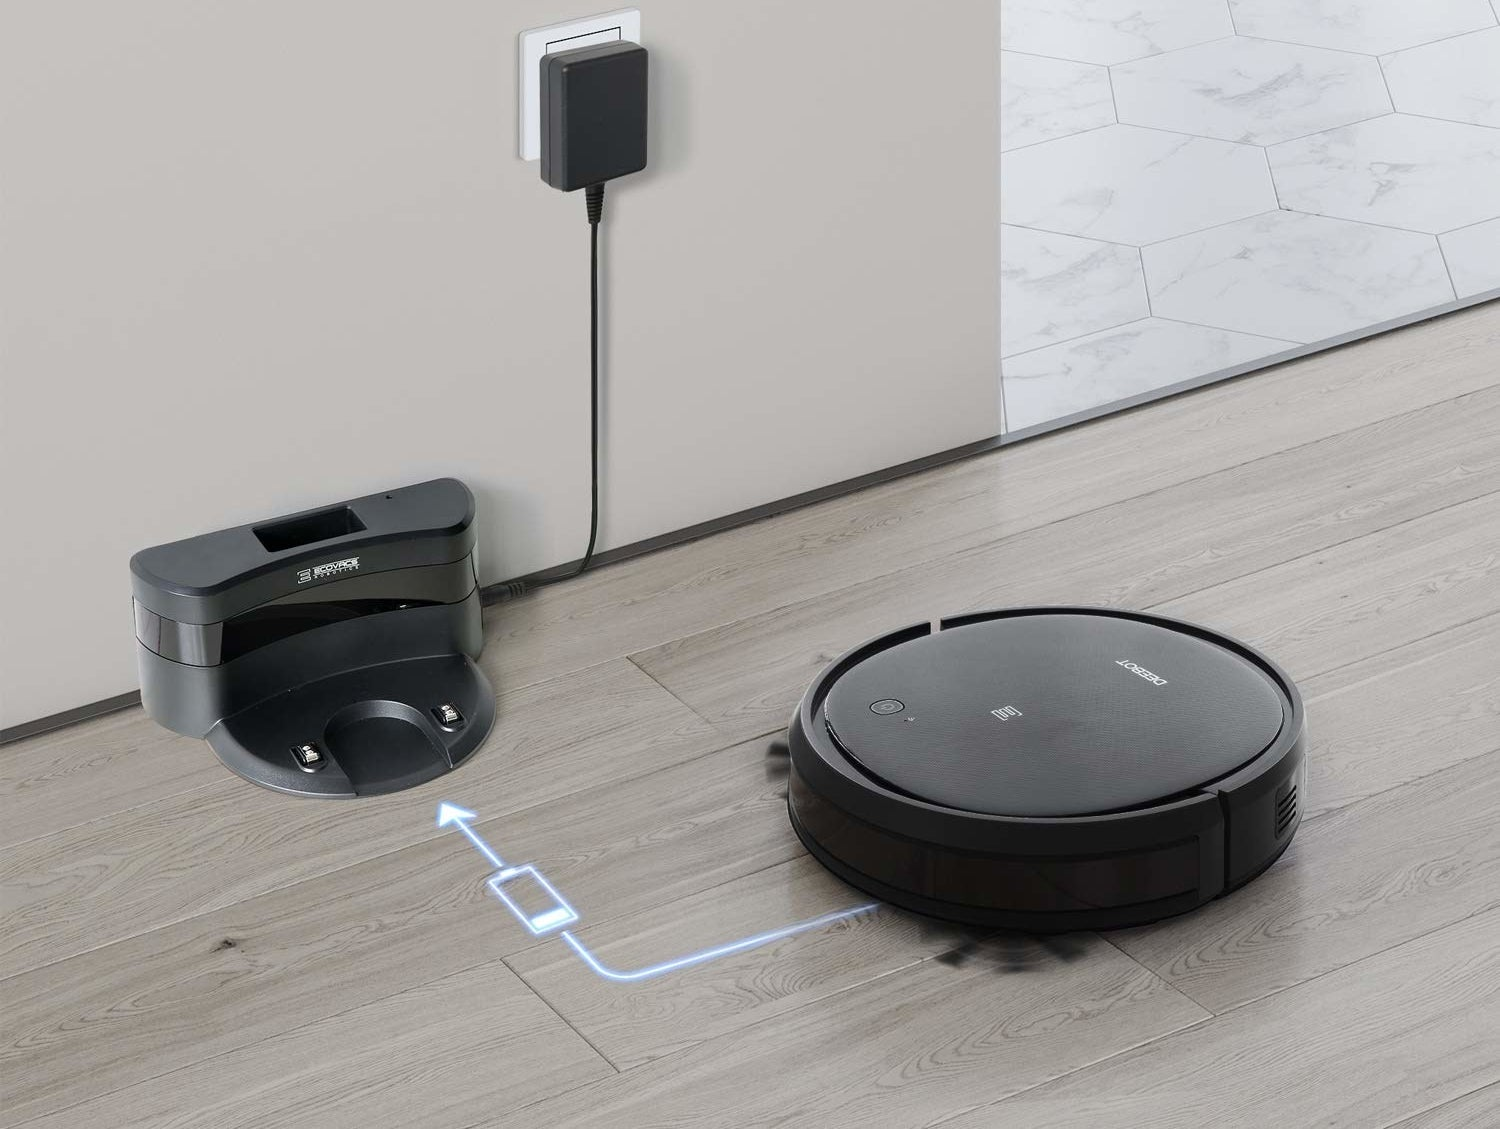 Vacuum robot going back to its station to charge.